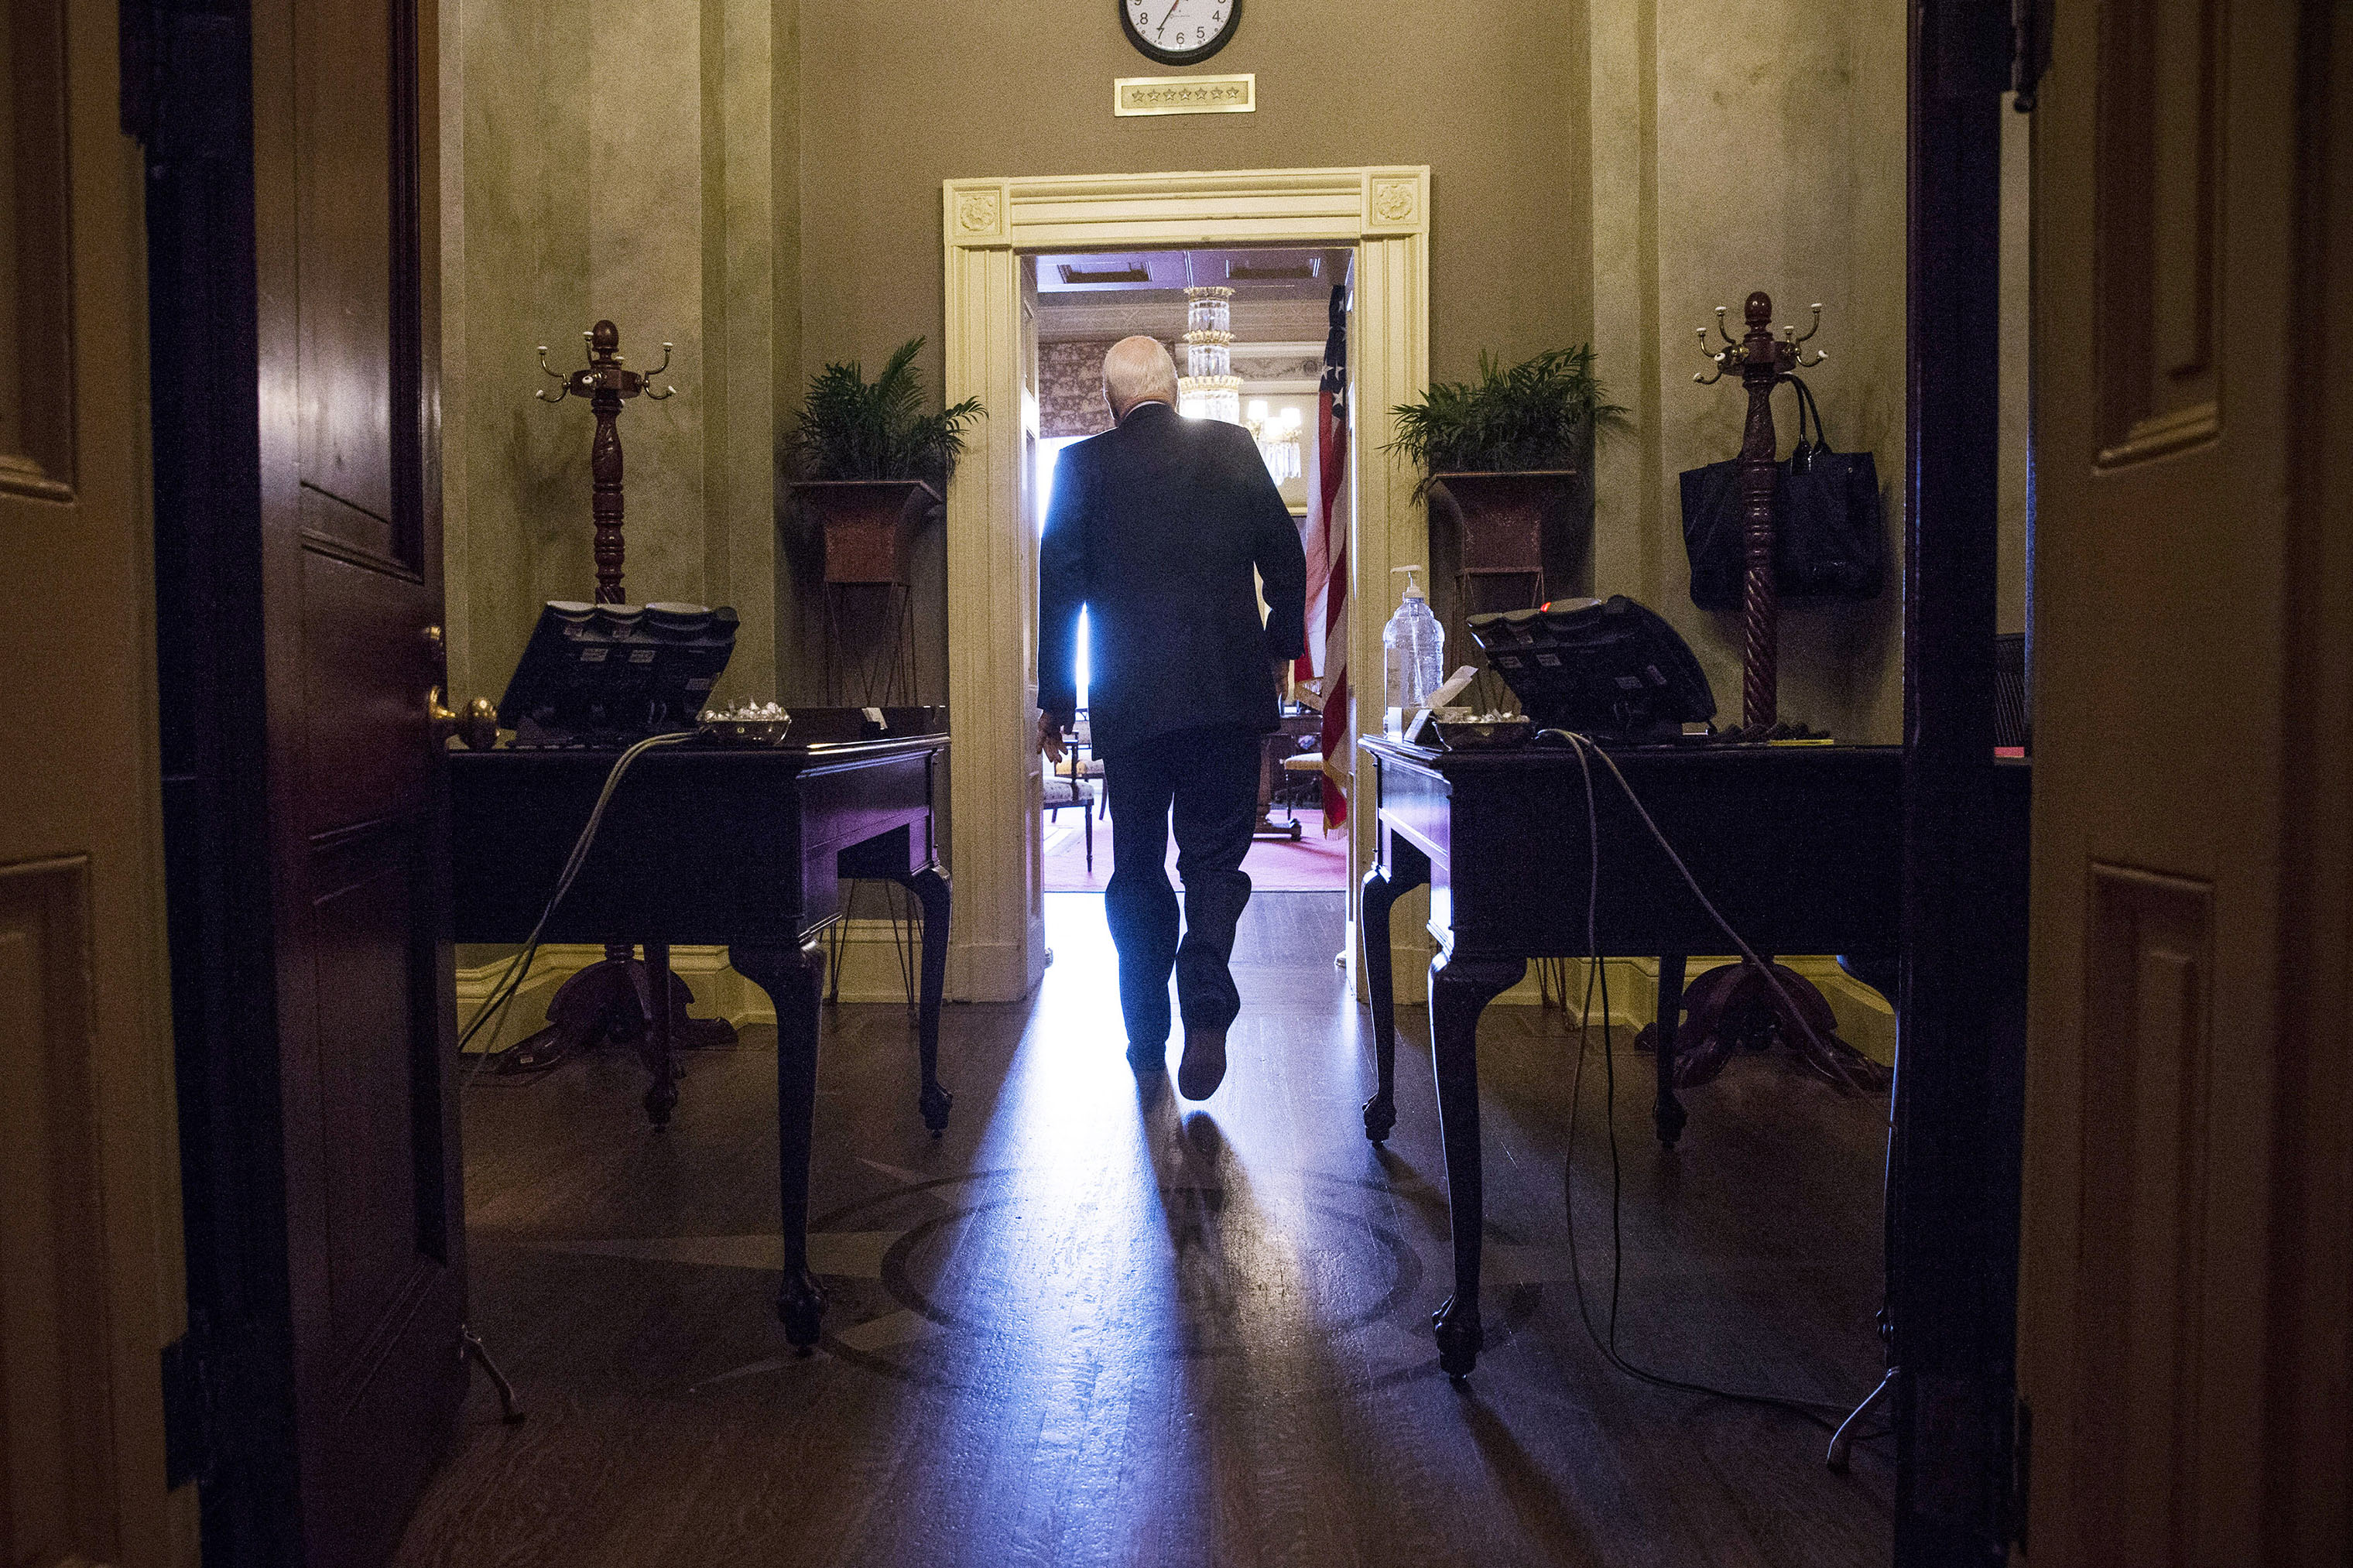 Sen. John McCain arrives at Senate Minority Leader Mitch McConnell's office in Washington, on Oct. 16, 2013.